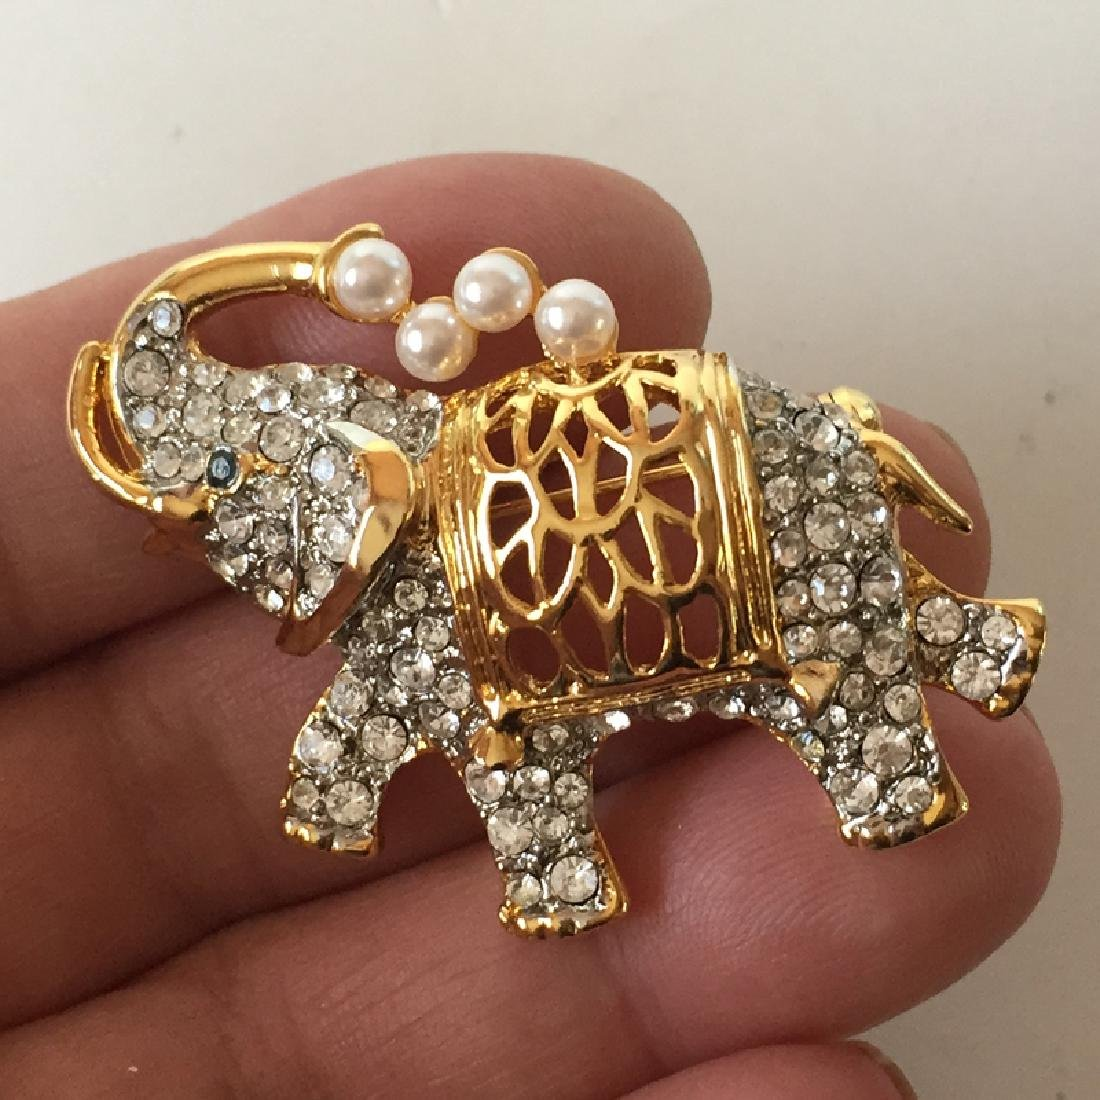 Gold plated ELEPHANT shaped brooch with white